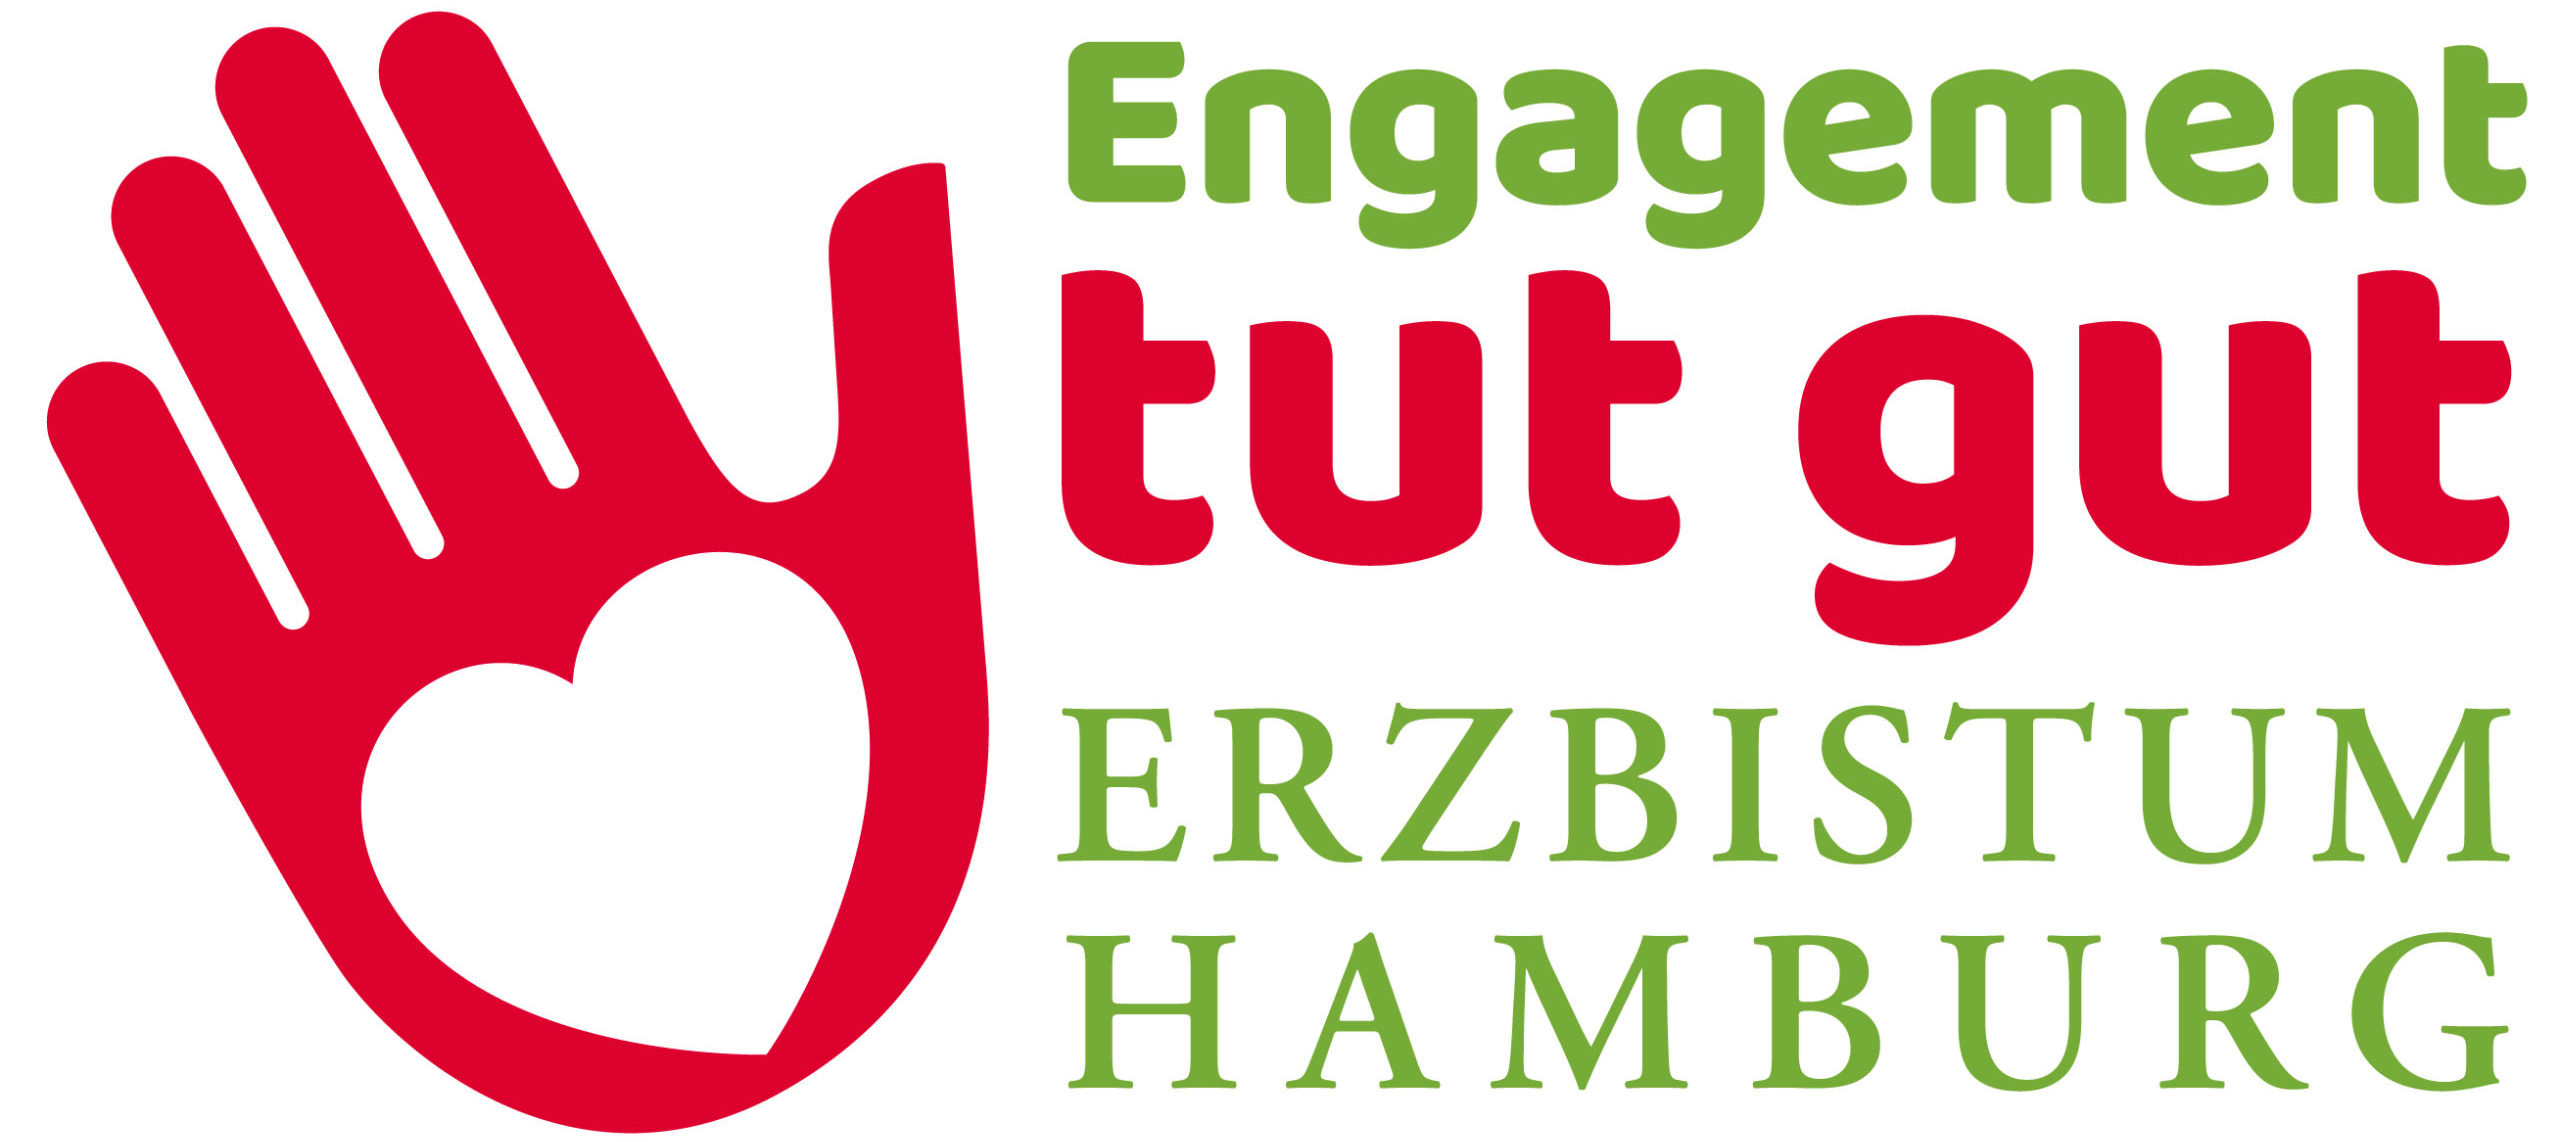 Engagement tut gut